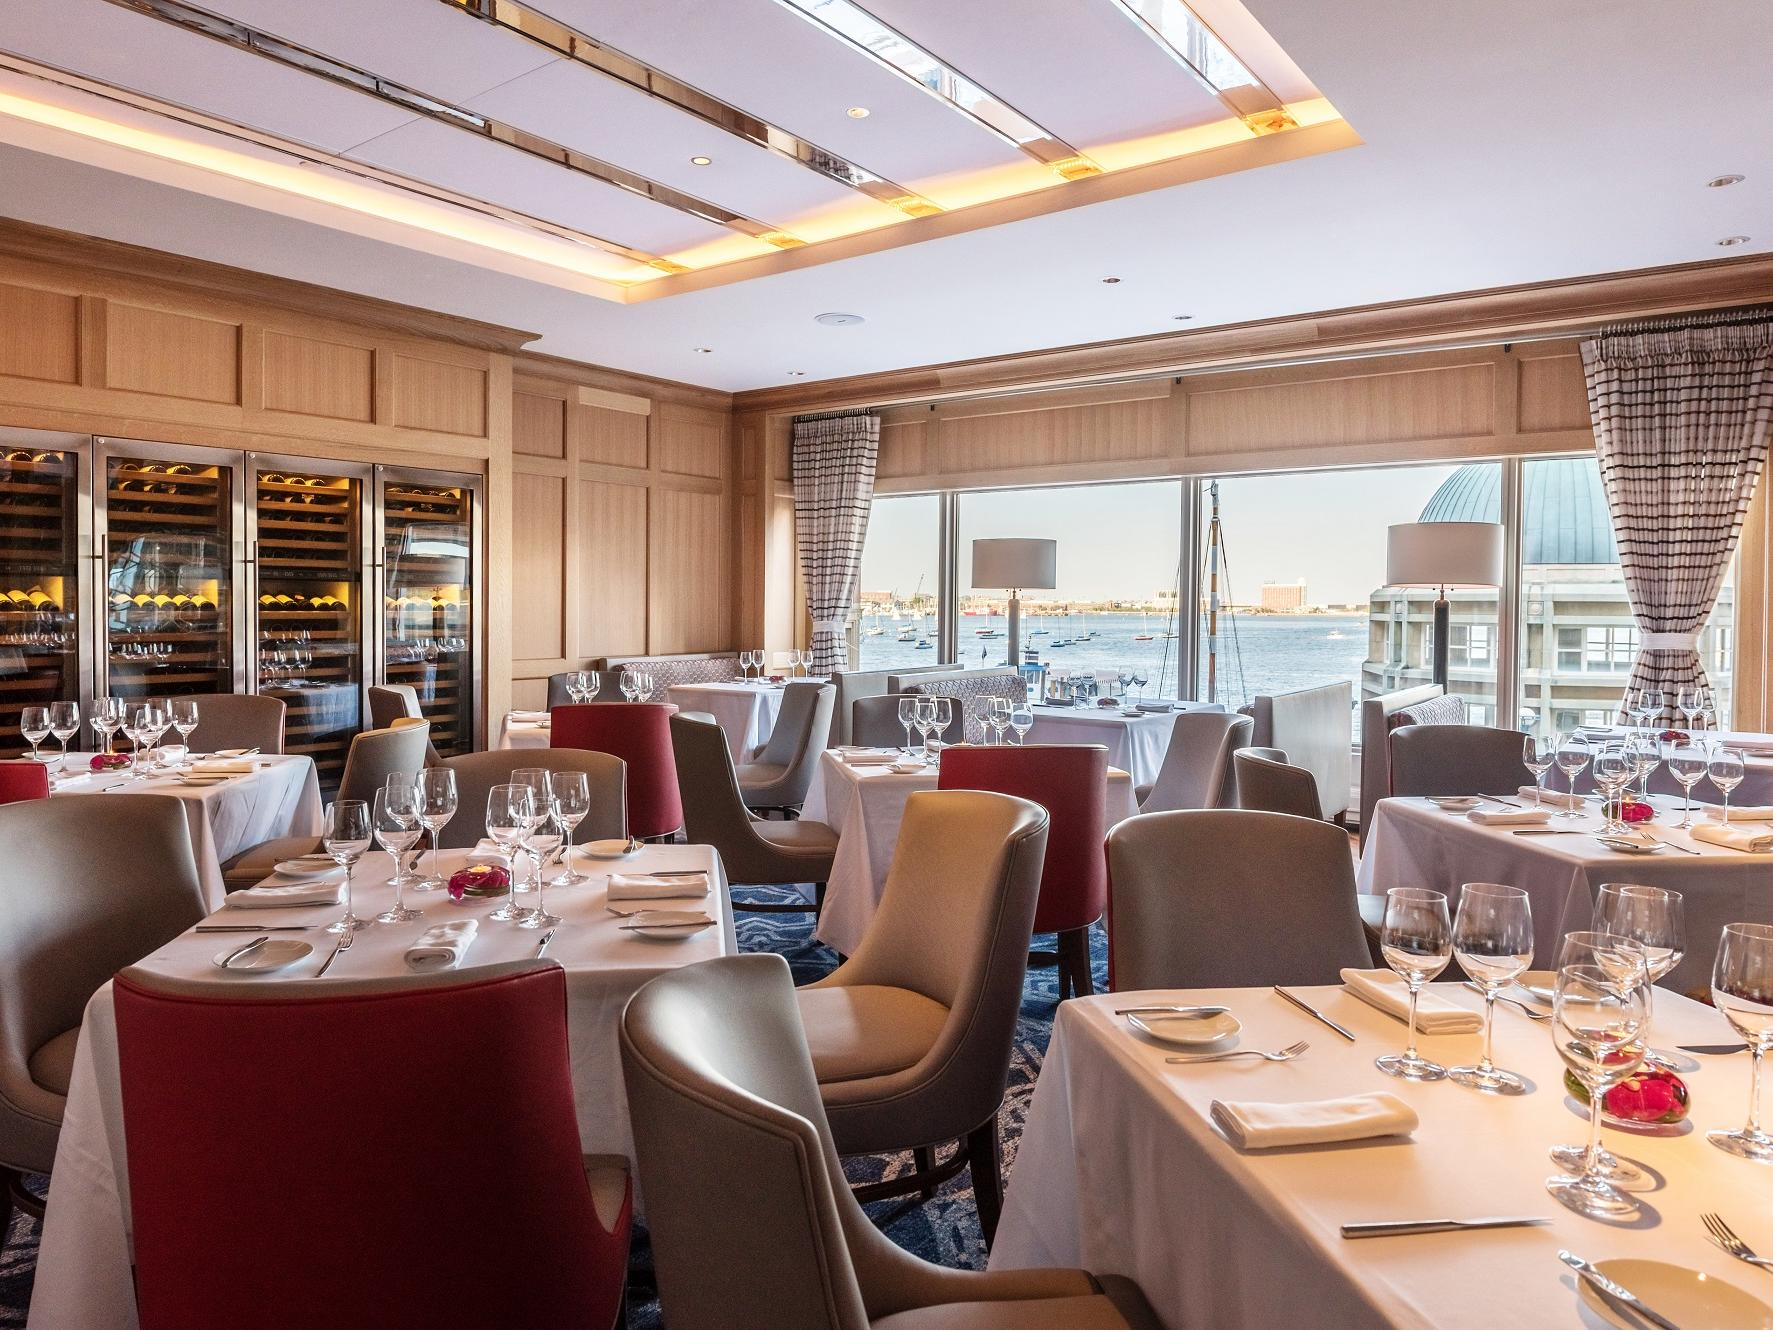 Restaurant seating with harbor views